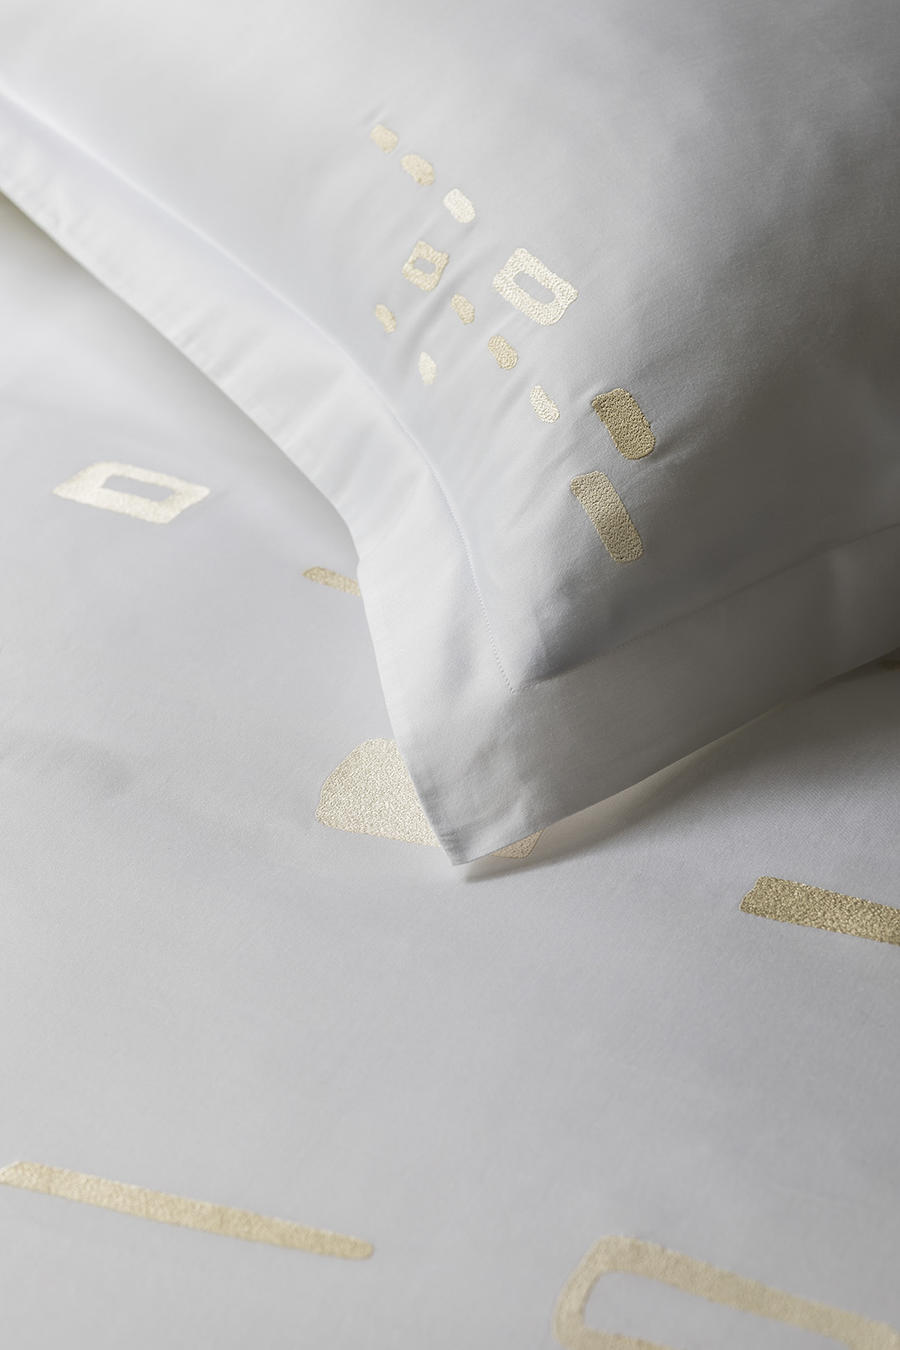 The Rocks bedding in Bronze from Baea's Collection line